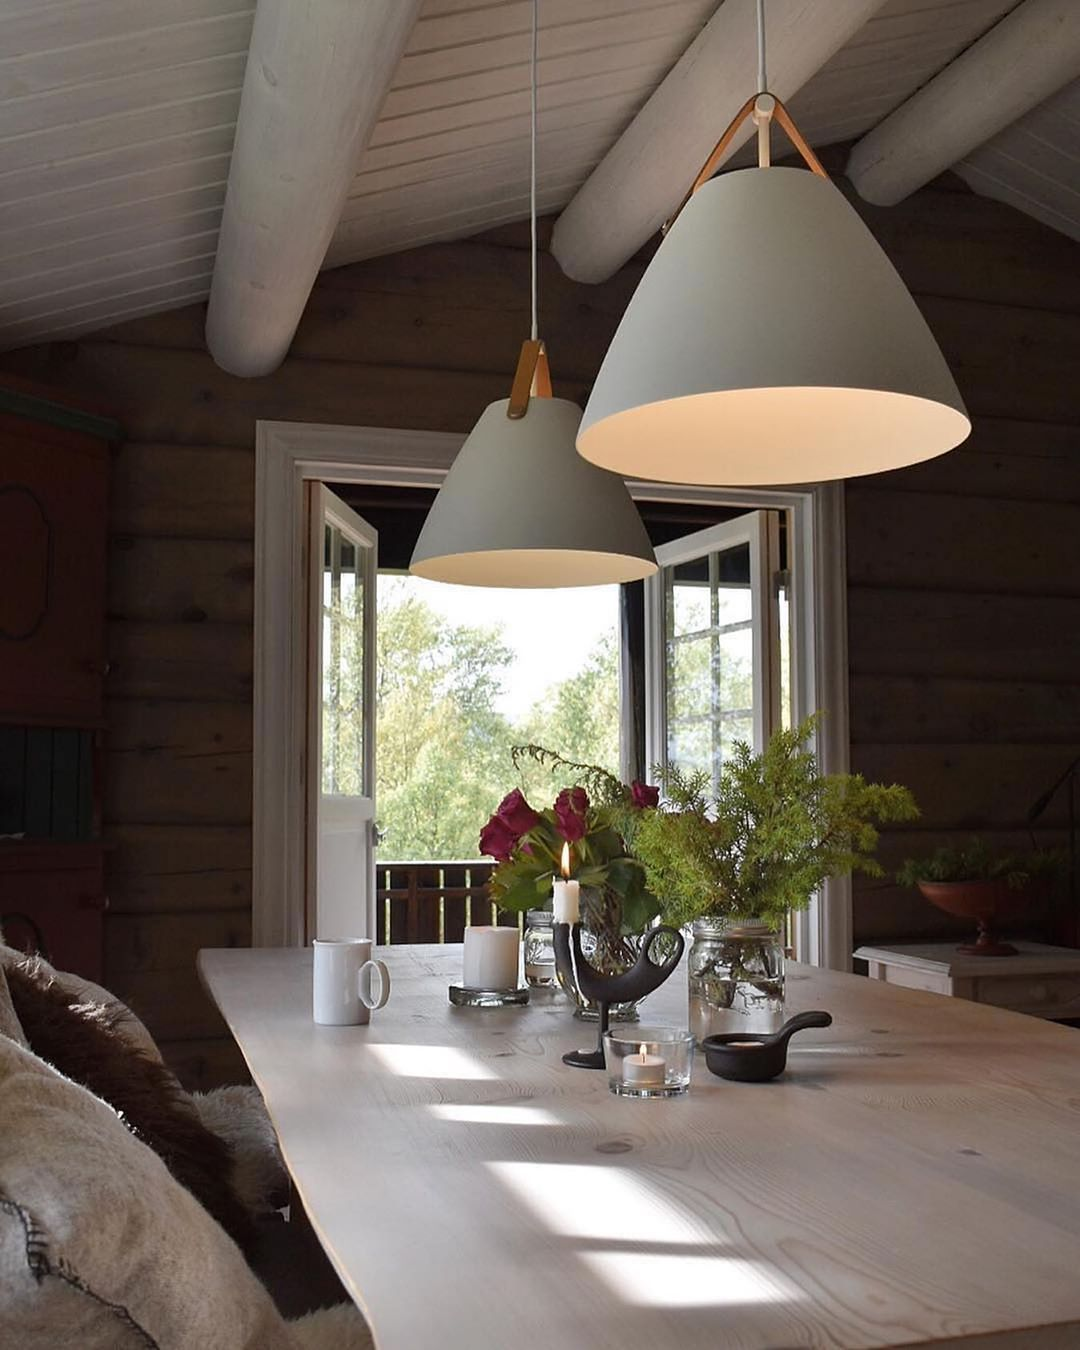 Strap pendant lights in a cosy cabin. What's not to love? 😍 Styled by @siri_her ⠀⠀⠀⠀⠀⠀⠀⠀⠀ #cabin #cabinlife #cabininthewoods #cabindecor #cabinporn #cabinliving #lights #lighting #lightingdesign #lamp #pendantlight